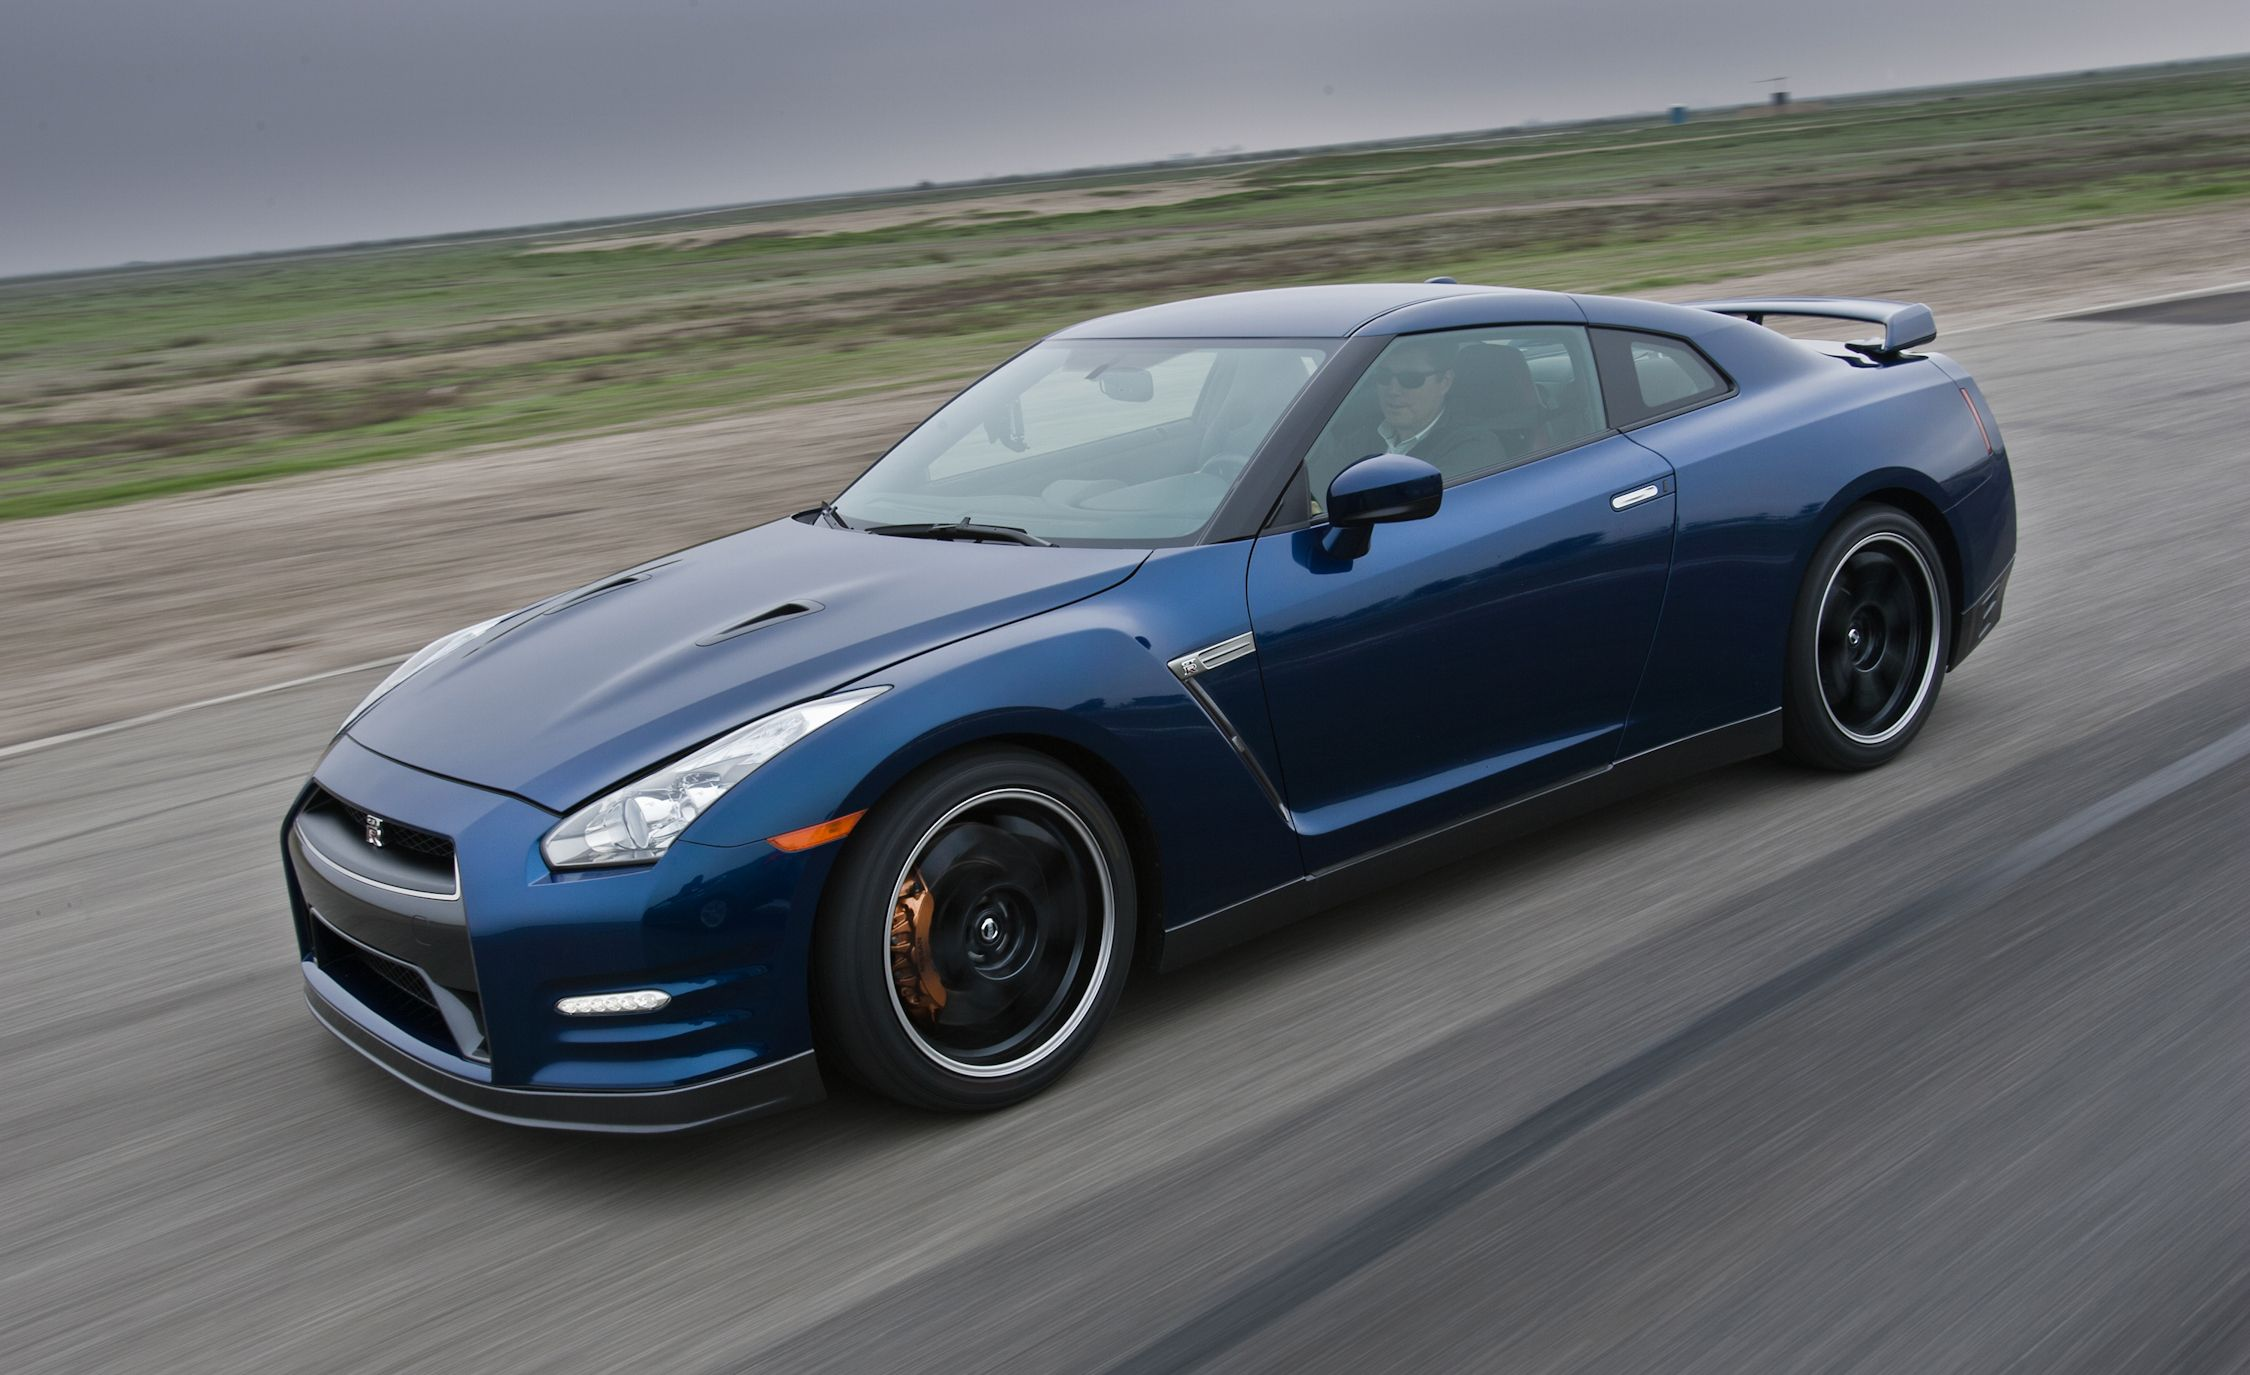 2012 nissan gt-r test – review – car and driver